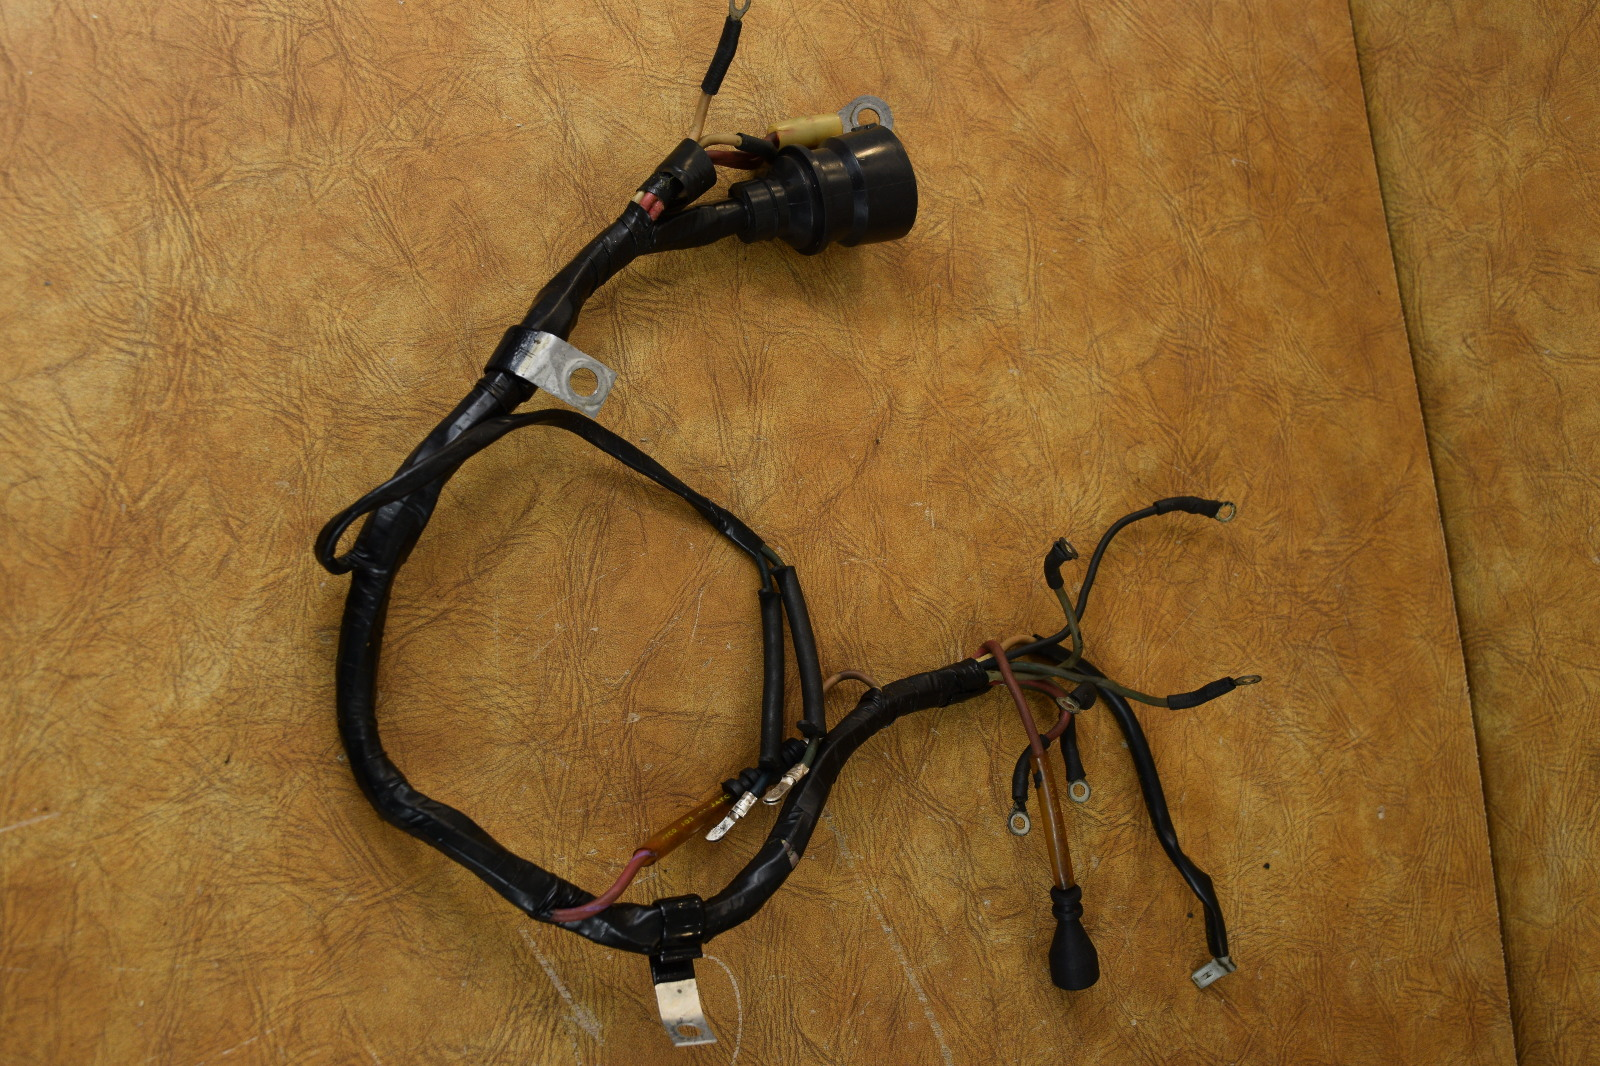 Evinrude Wiring Harness Trusted Diagrams Shorelander 1970 1971 Johnson 384050 0384050 60 Hp Ford